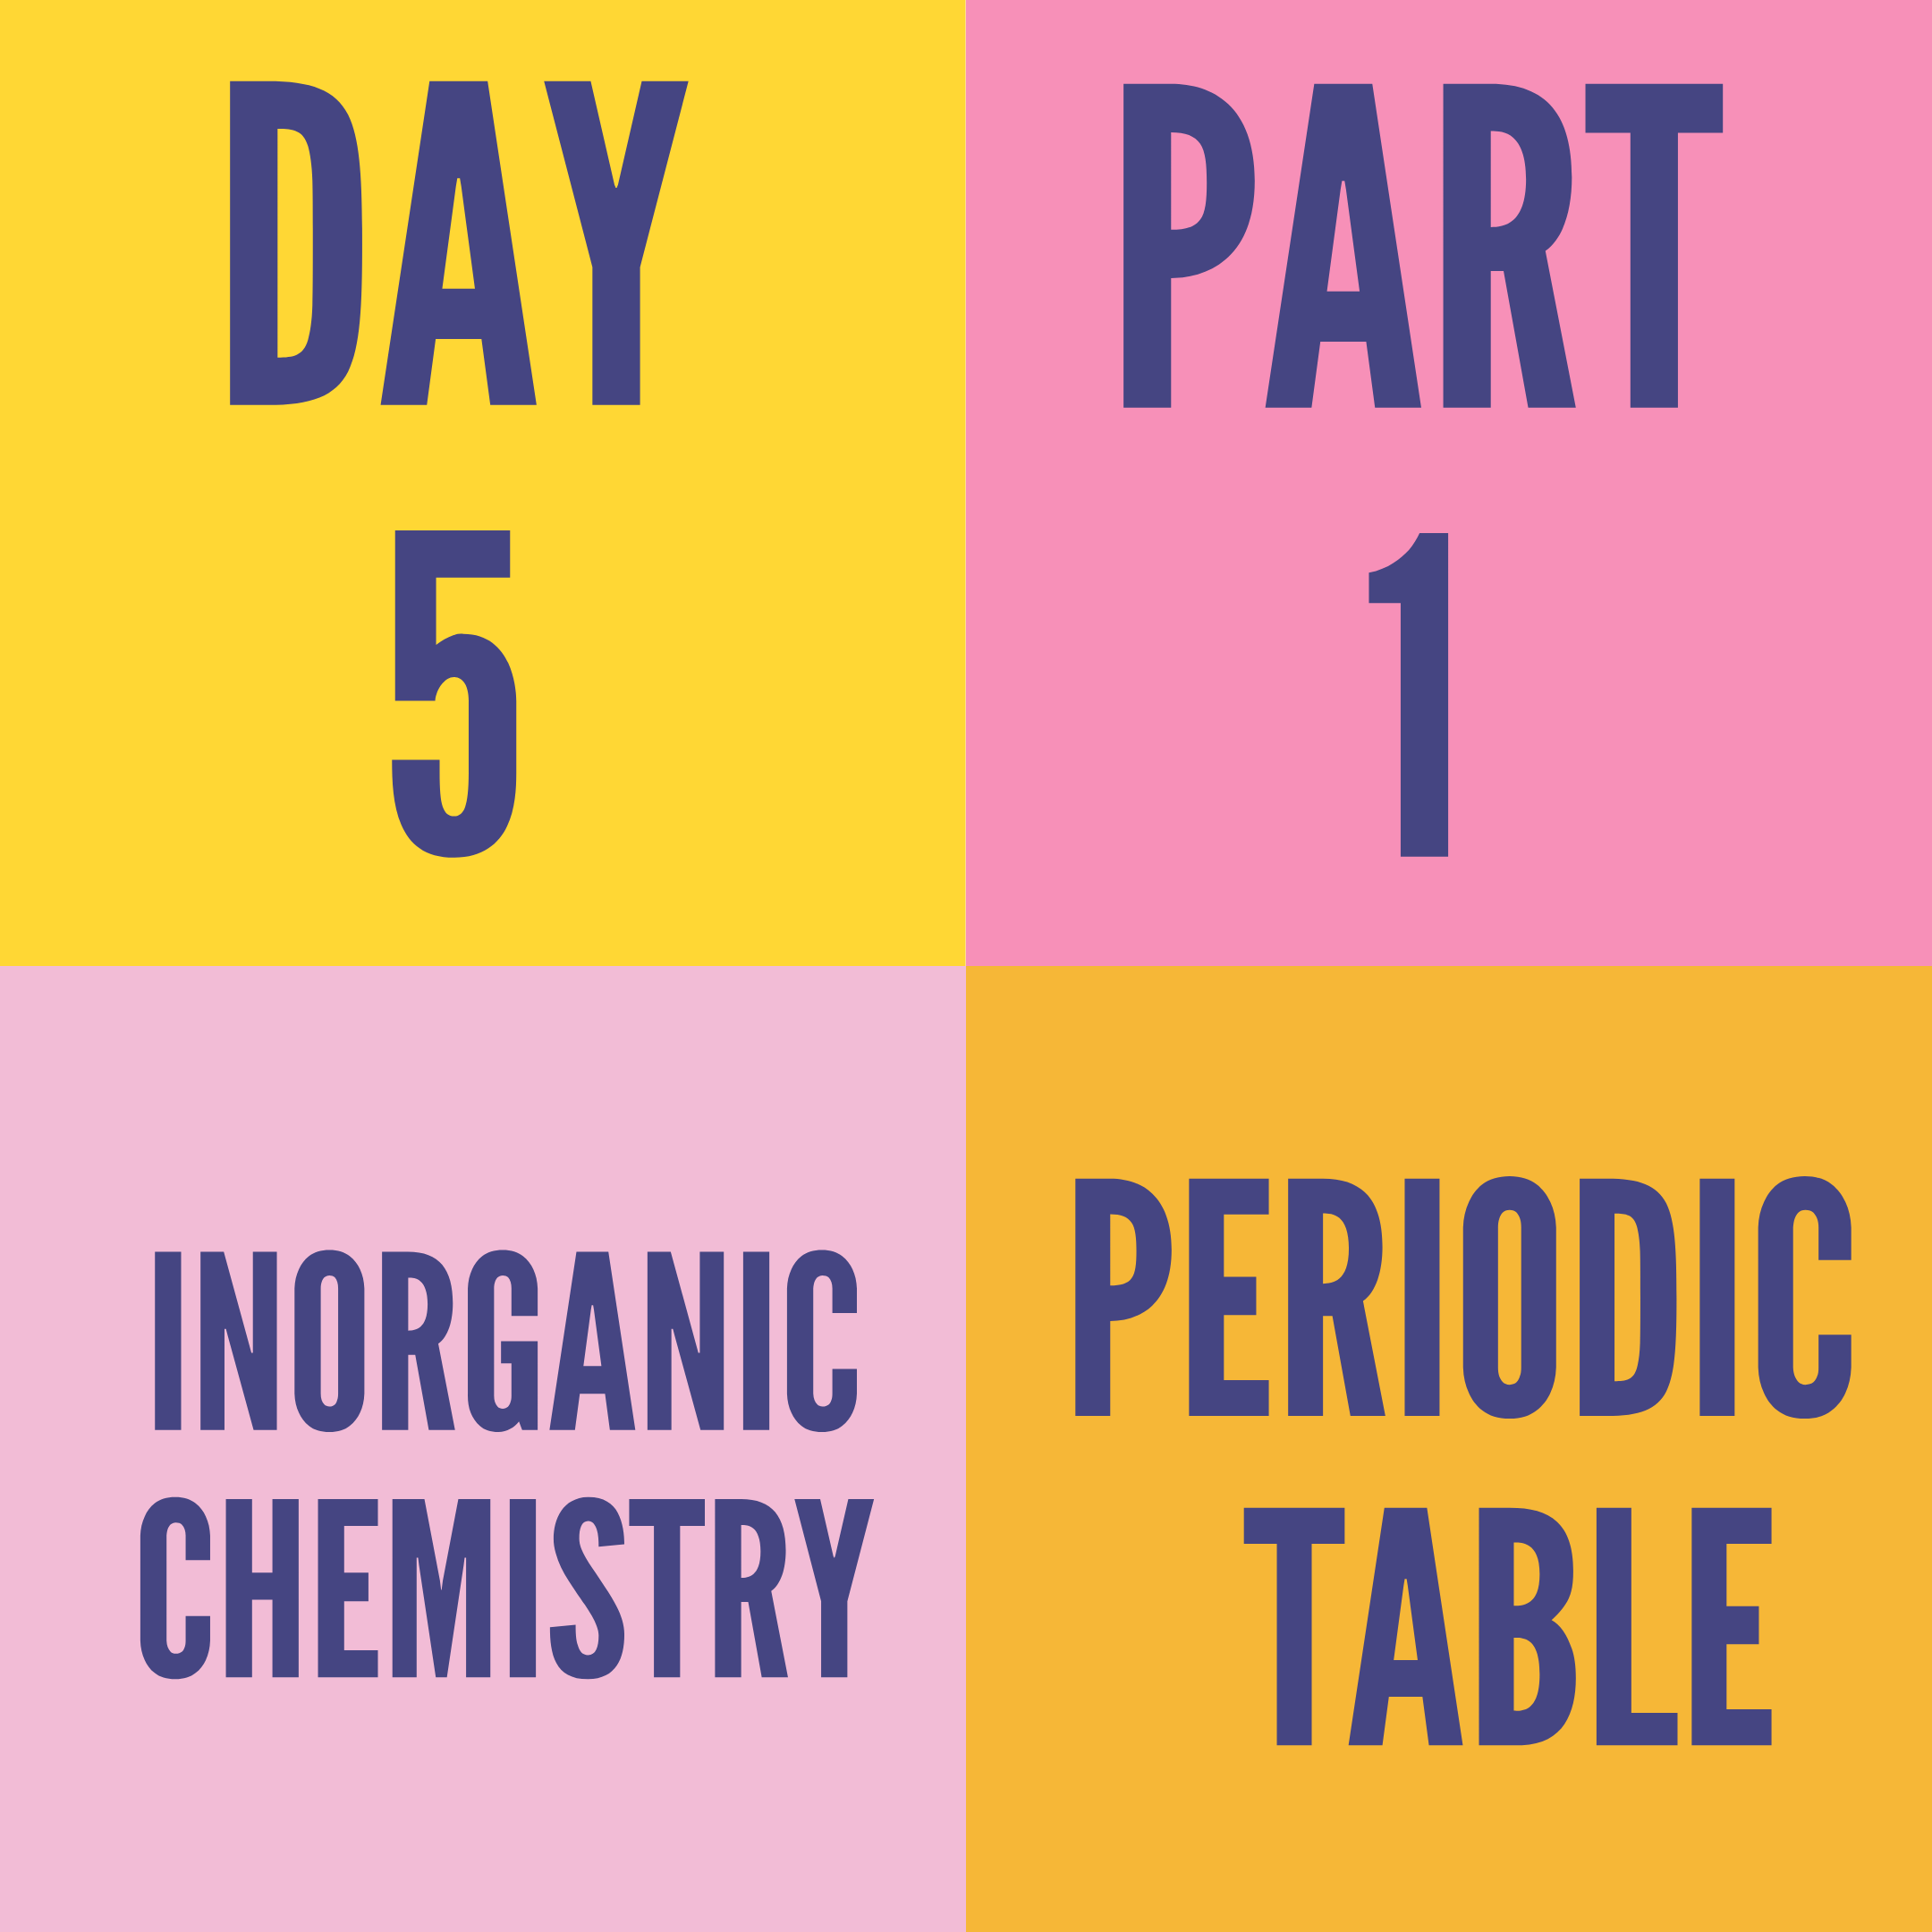 DAY-5 PART-1 PERIODIC TABLE